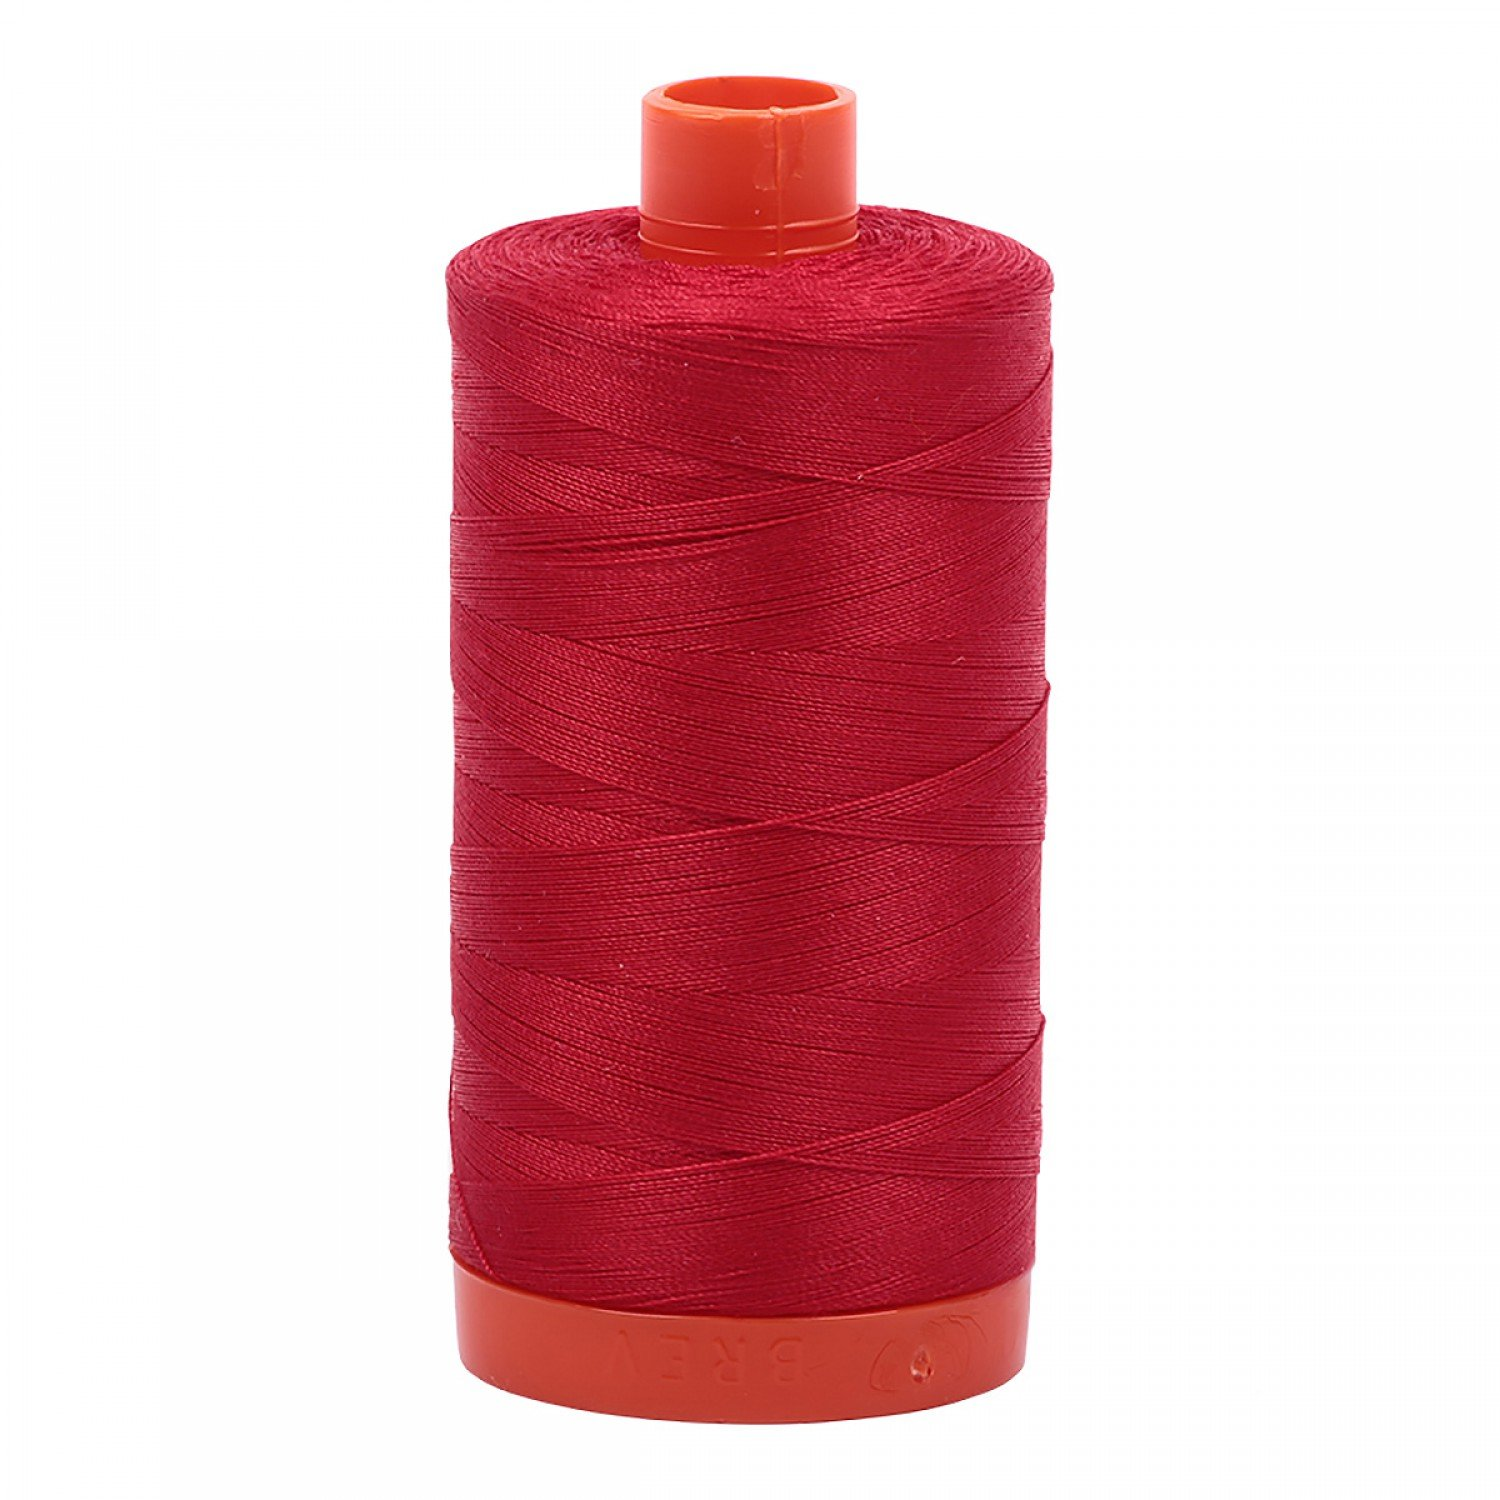 Aurifil 2250 - Mako Cotton Thread Solid 50wt 1422yds Red